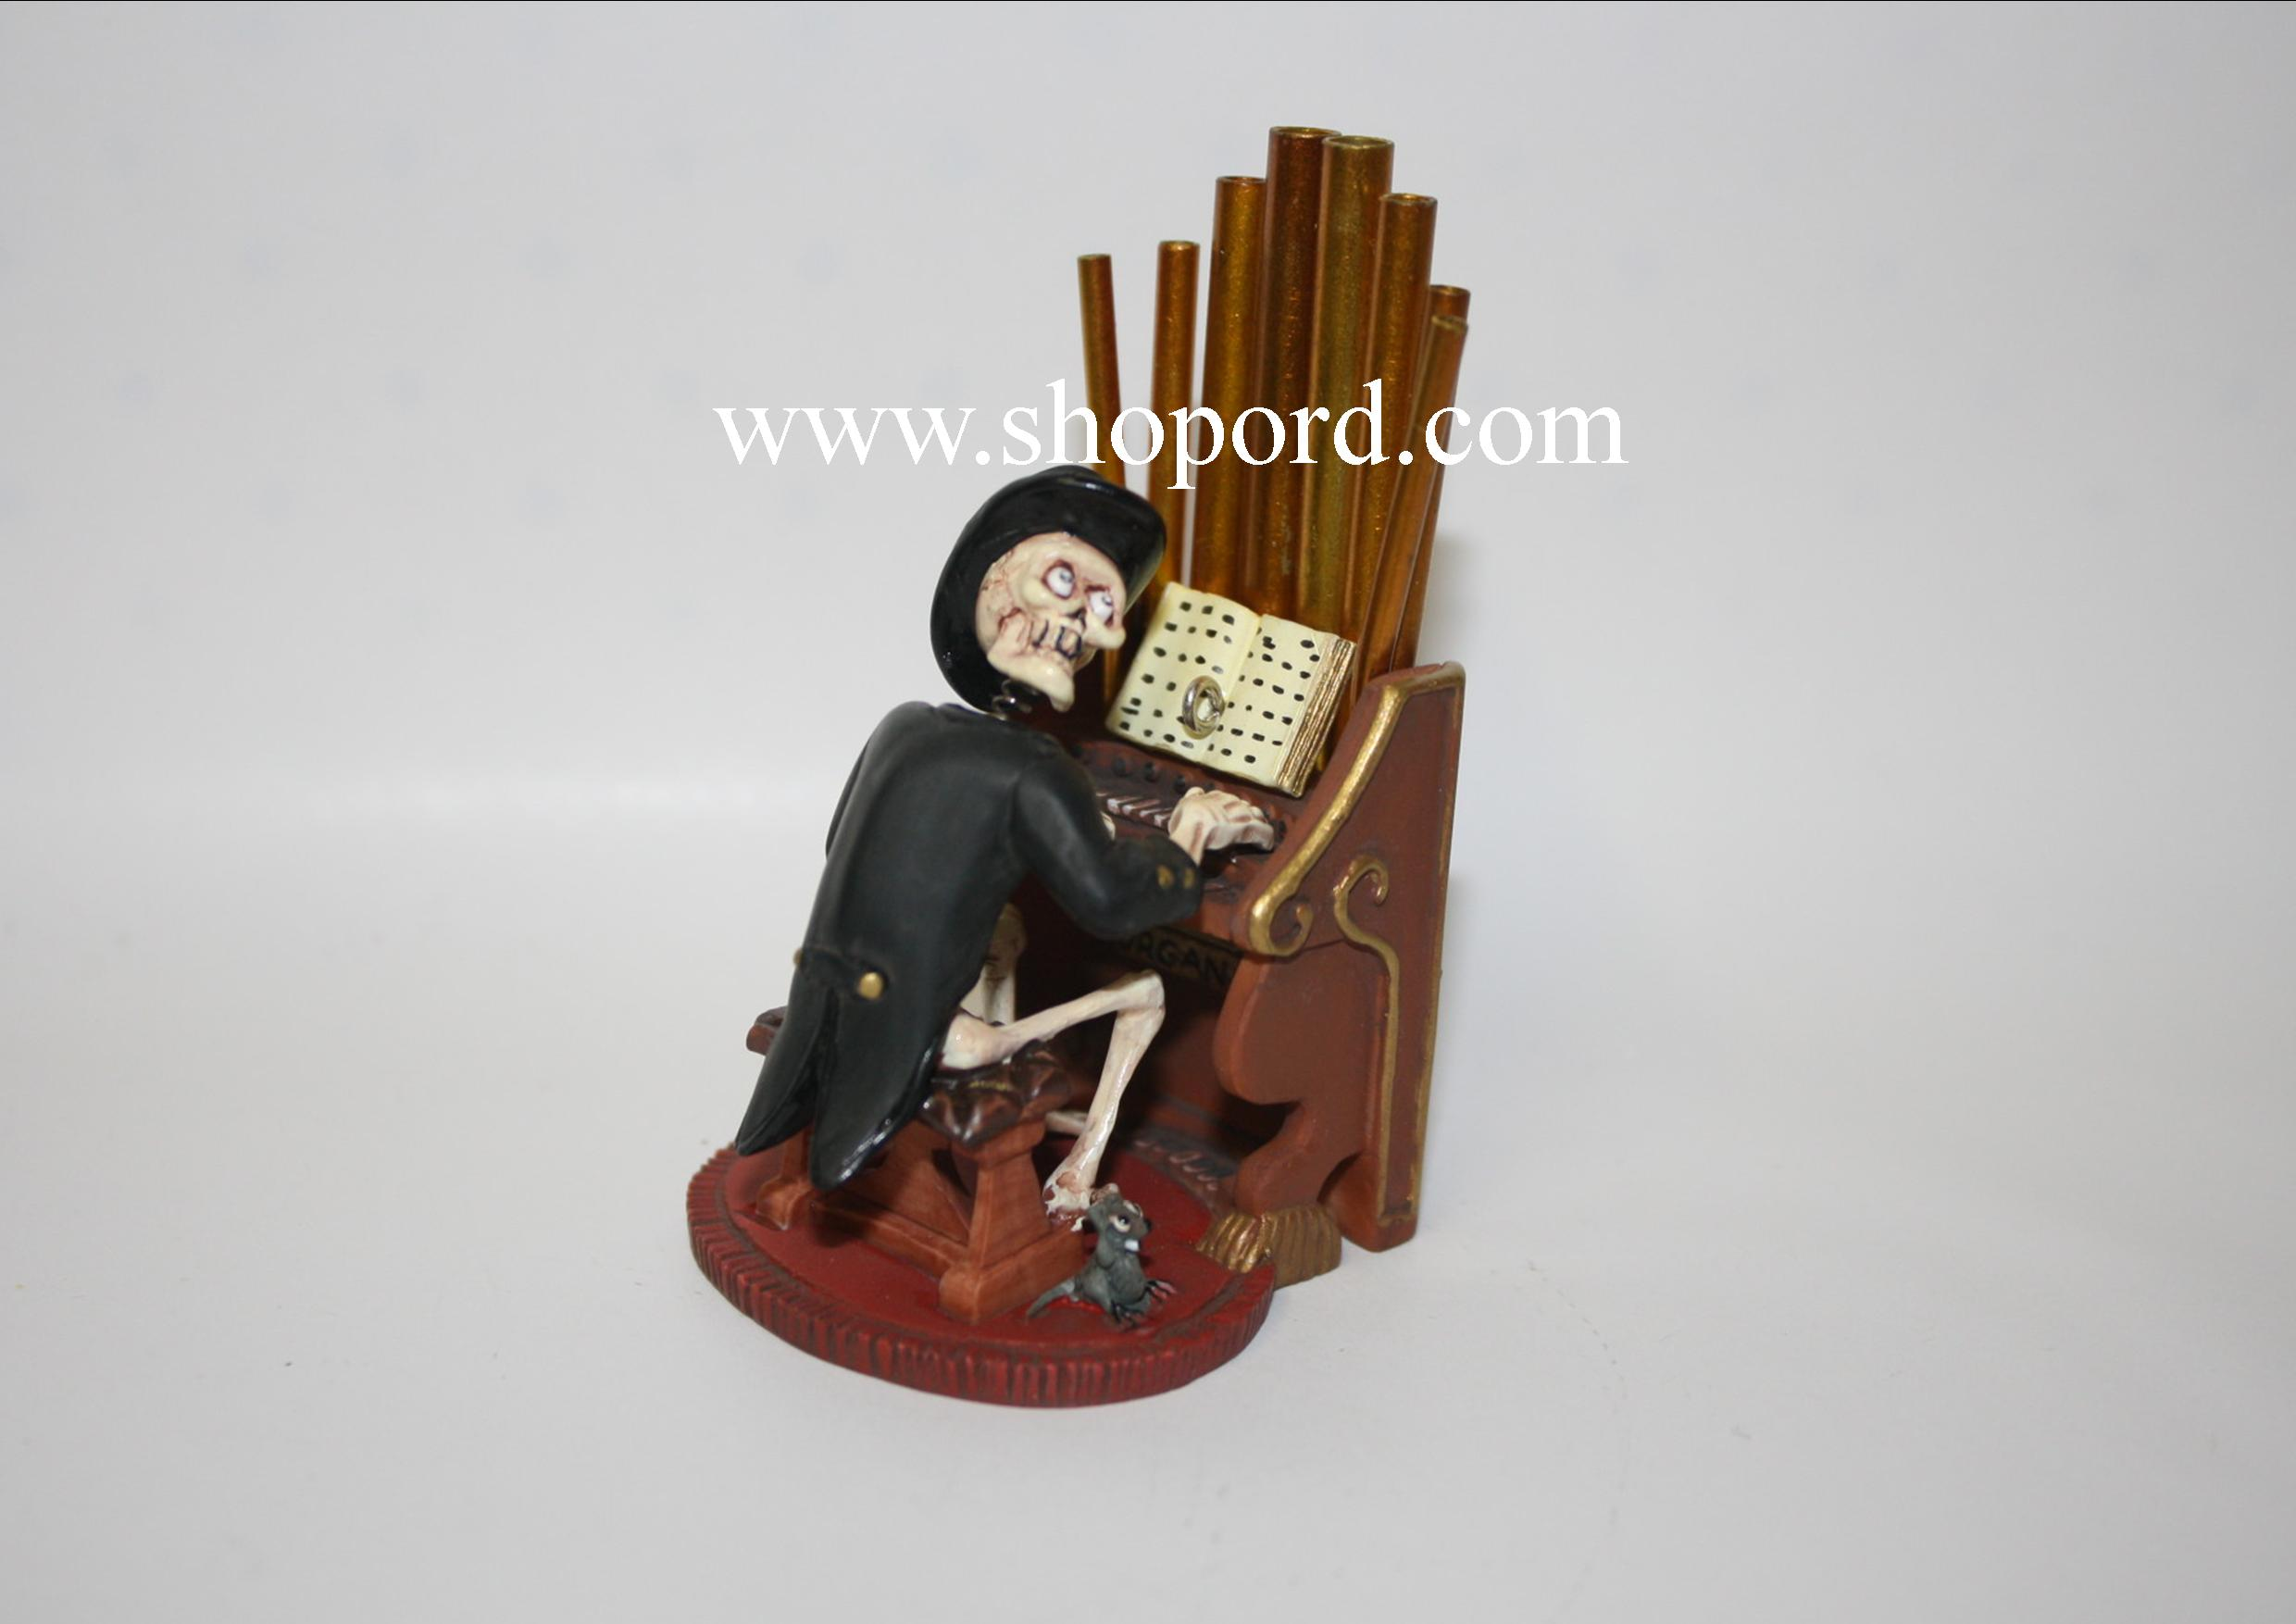 Hallmark 2004 Old Ned The Musician Mansion On Ravenwood Lane Halloween Ornament QFO6034